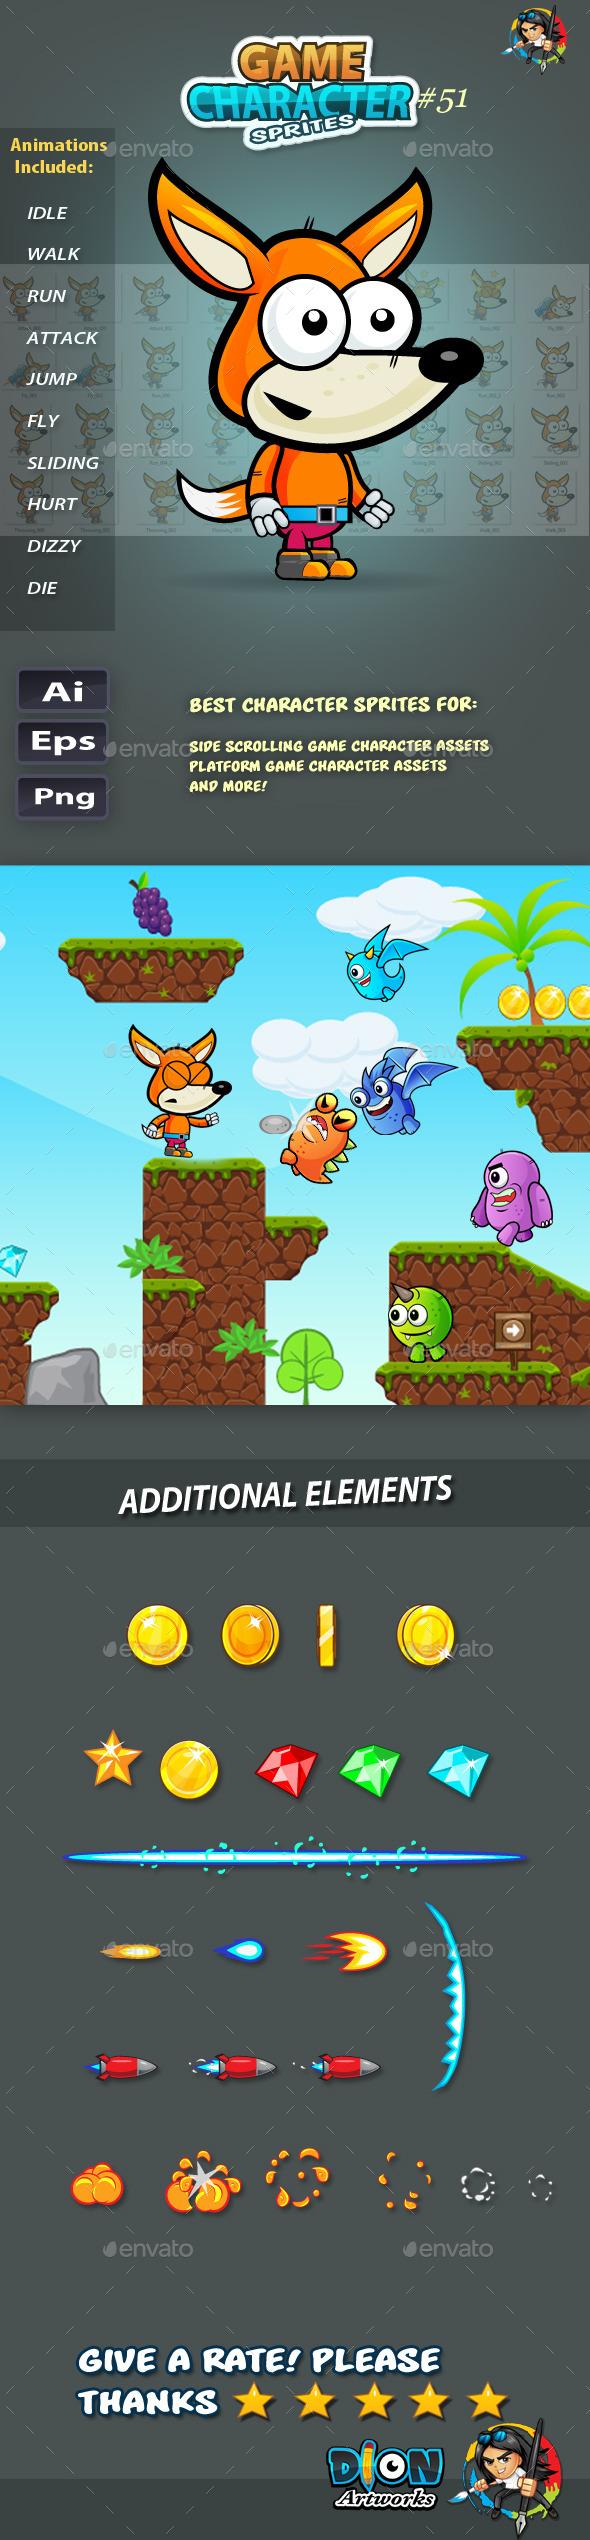 GraphicRiver Fox 2D Game Character Sprites 51 11760934